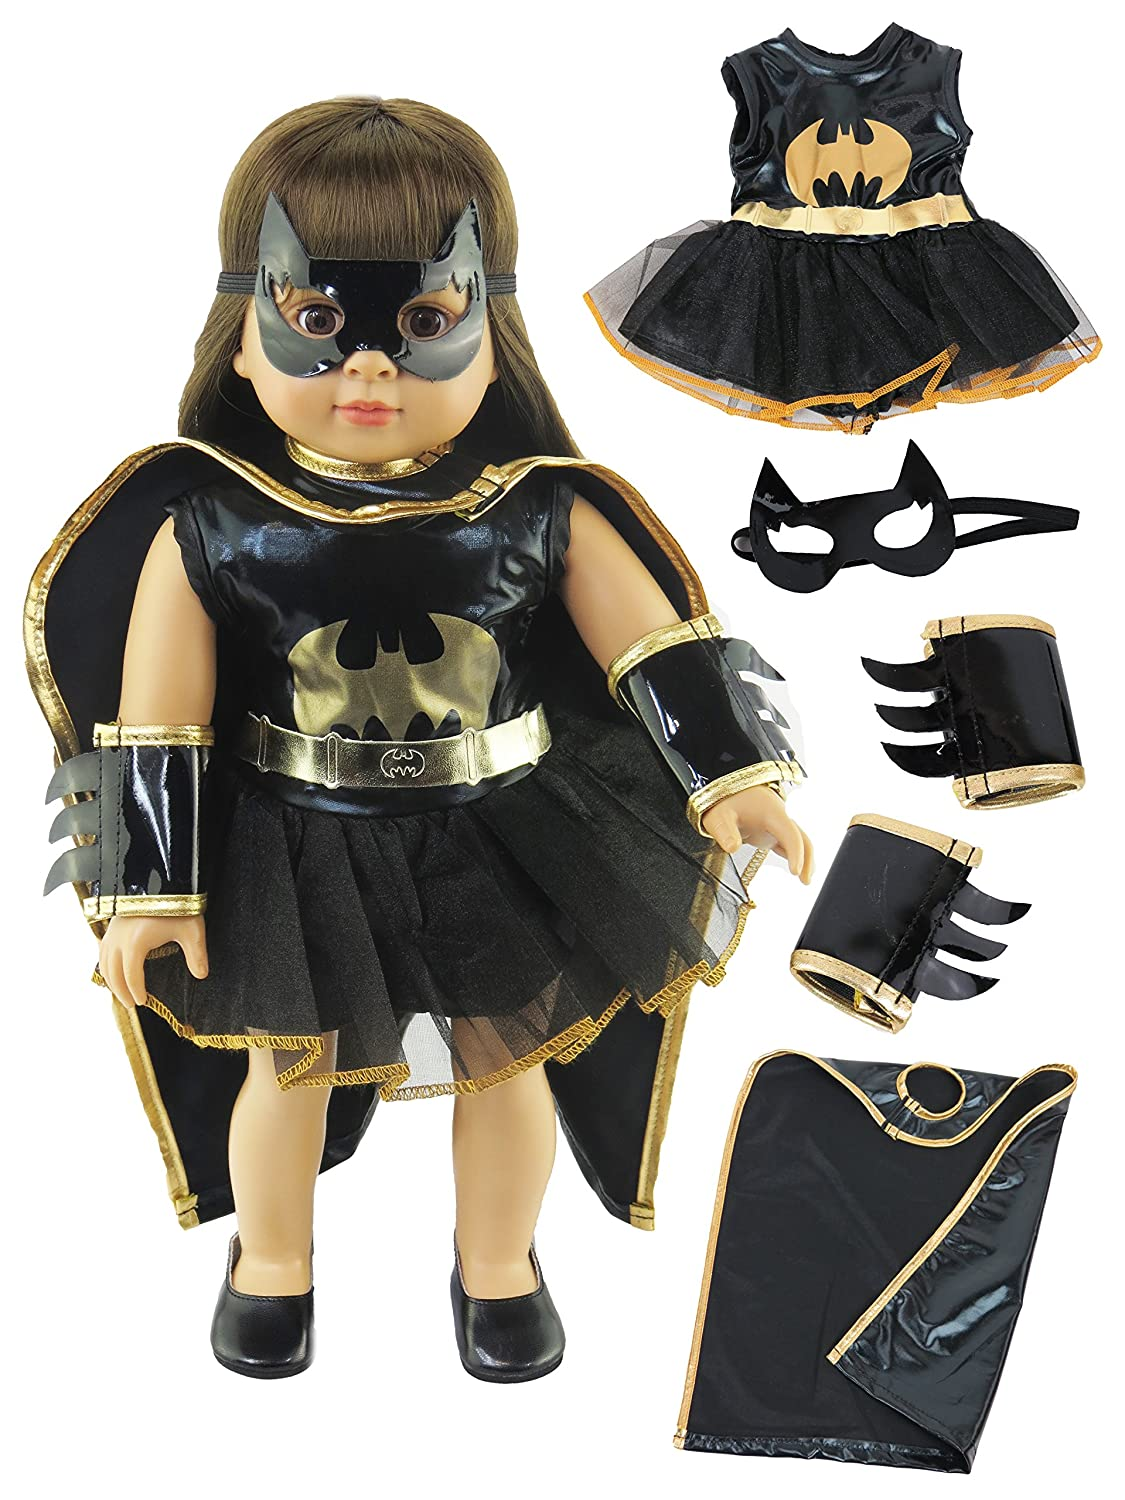 Little Batgirl Costume | Fits 18 American Girl Dolls, Madame Alexander, Our Generation, etc. | 18 Inch Doll Clothes American Fashion World